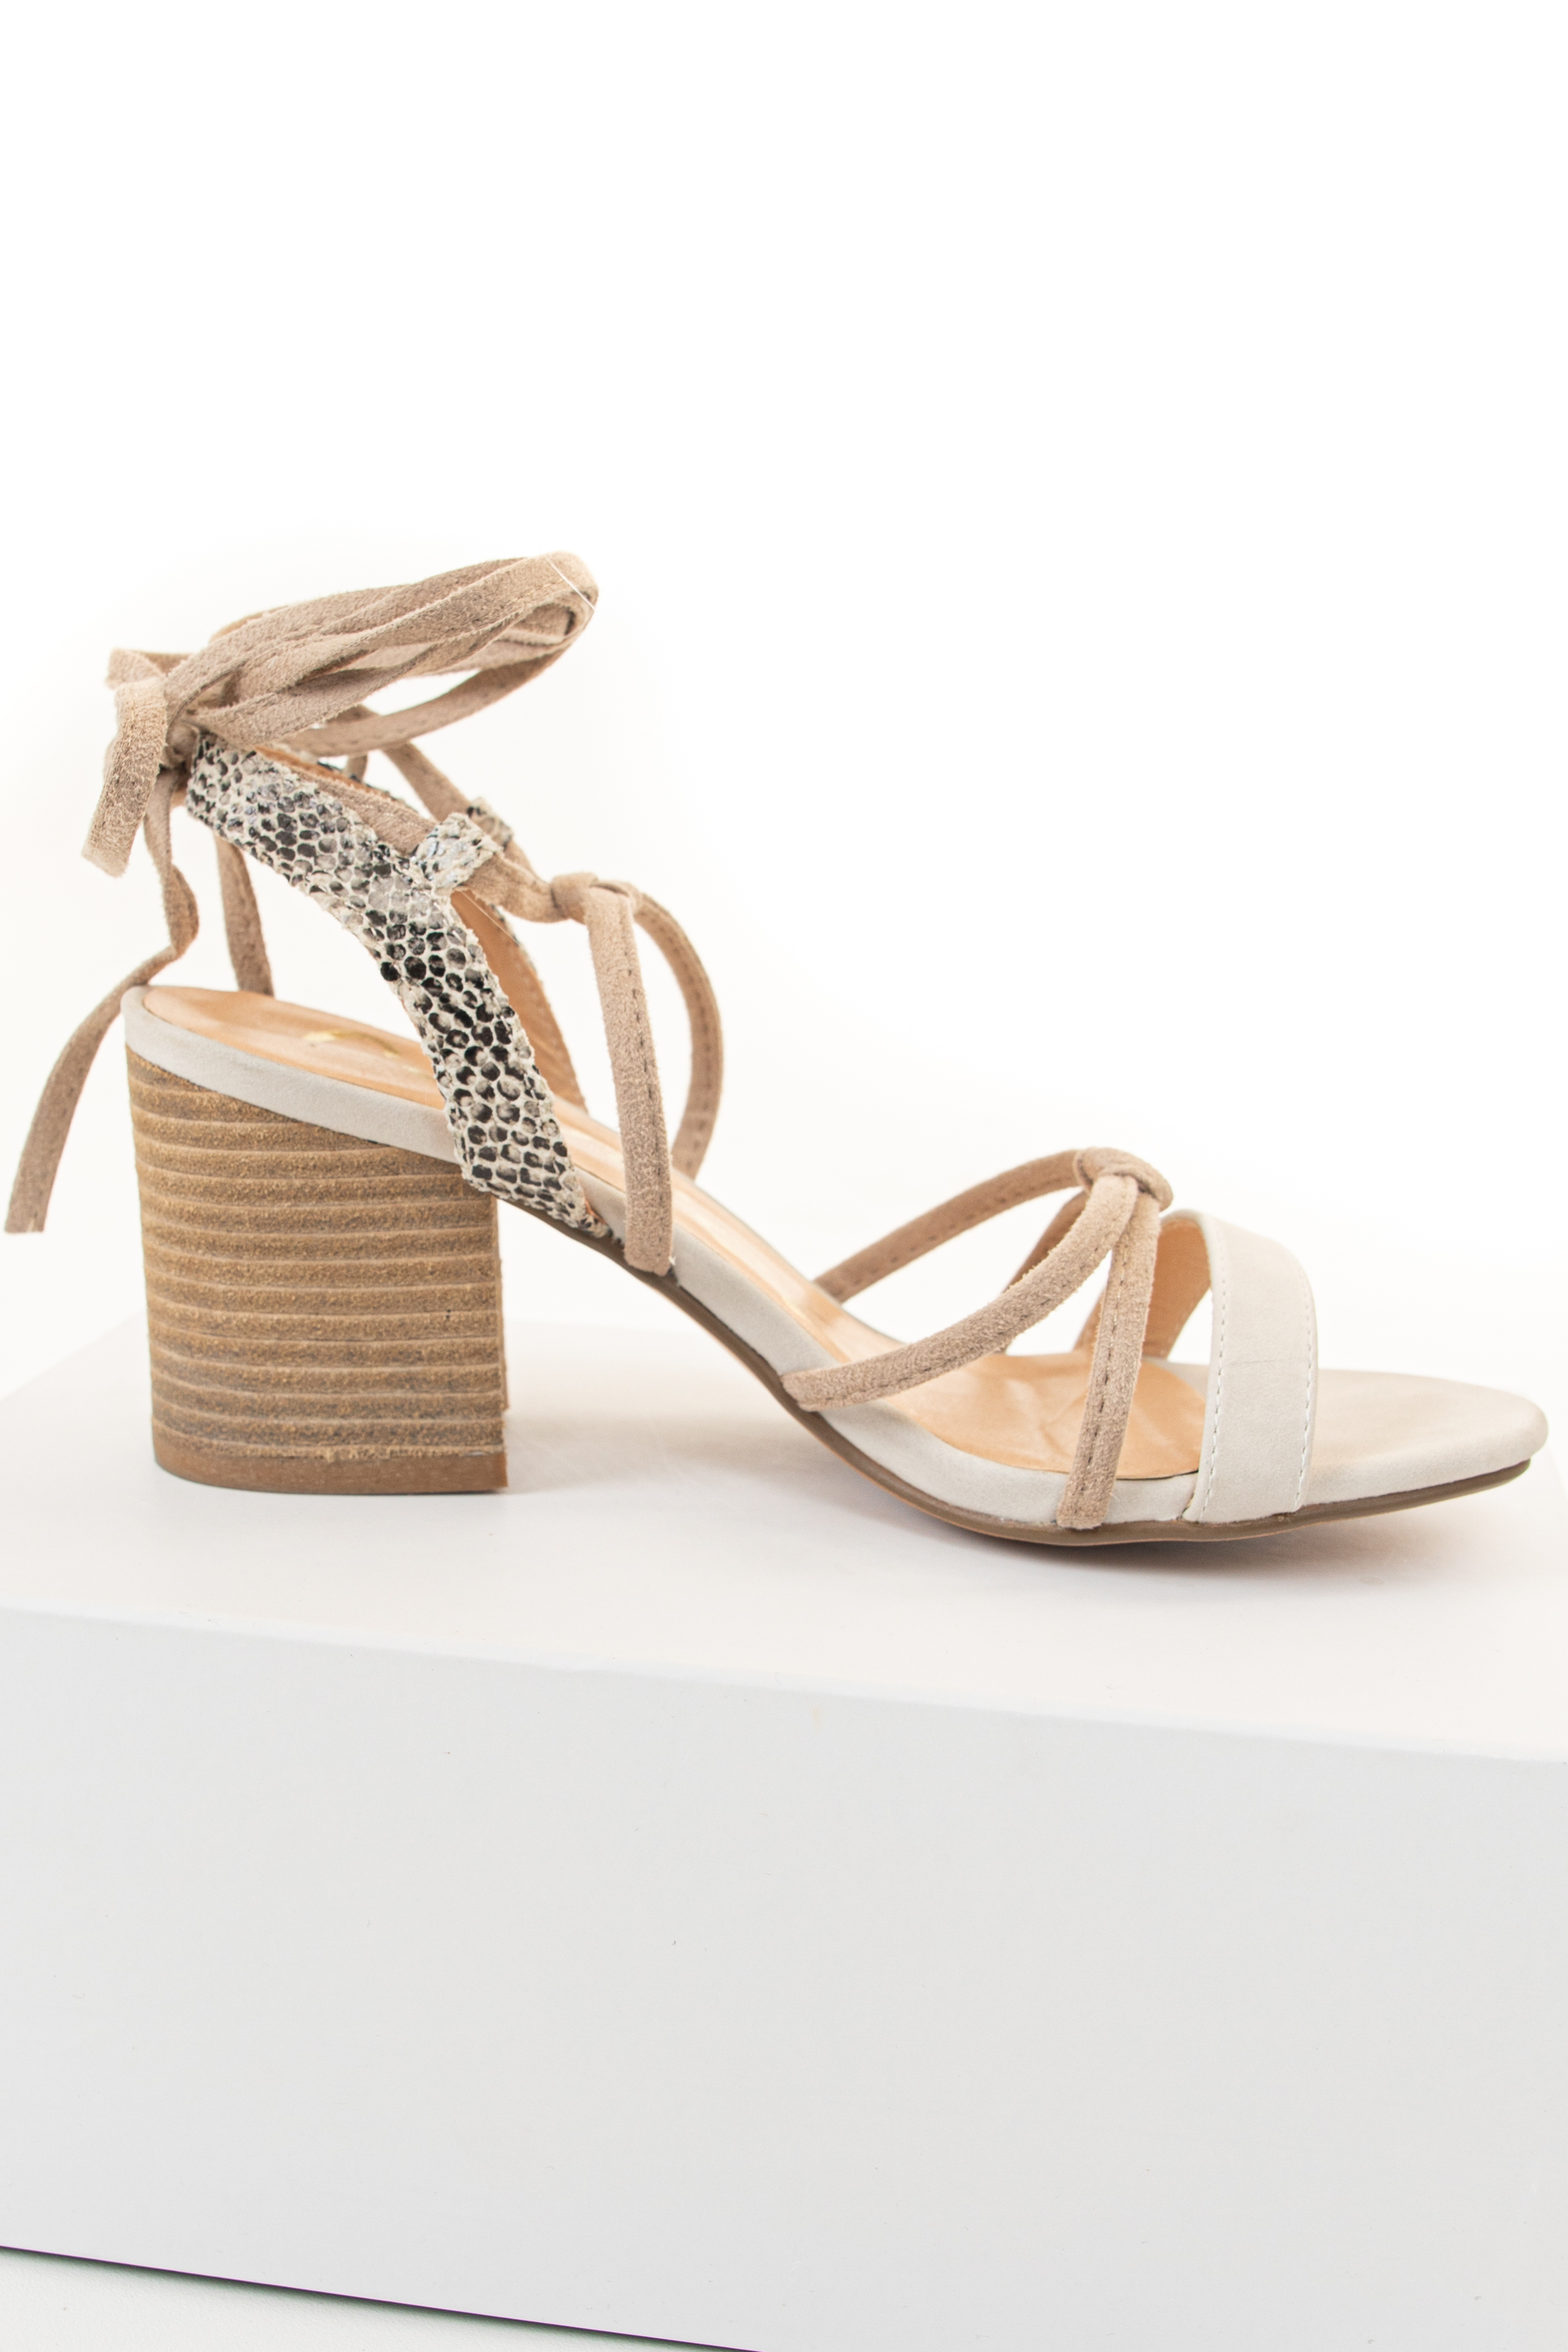 Ivory and Snakeskin Heeled Sandal with Long Ankle Straps